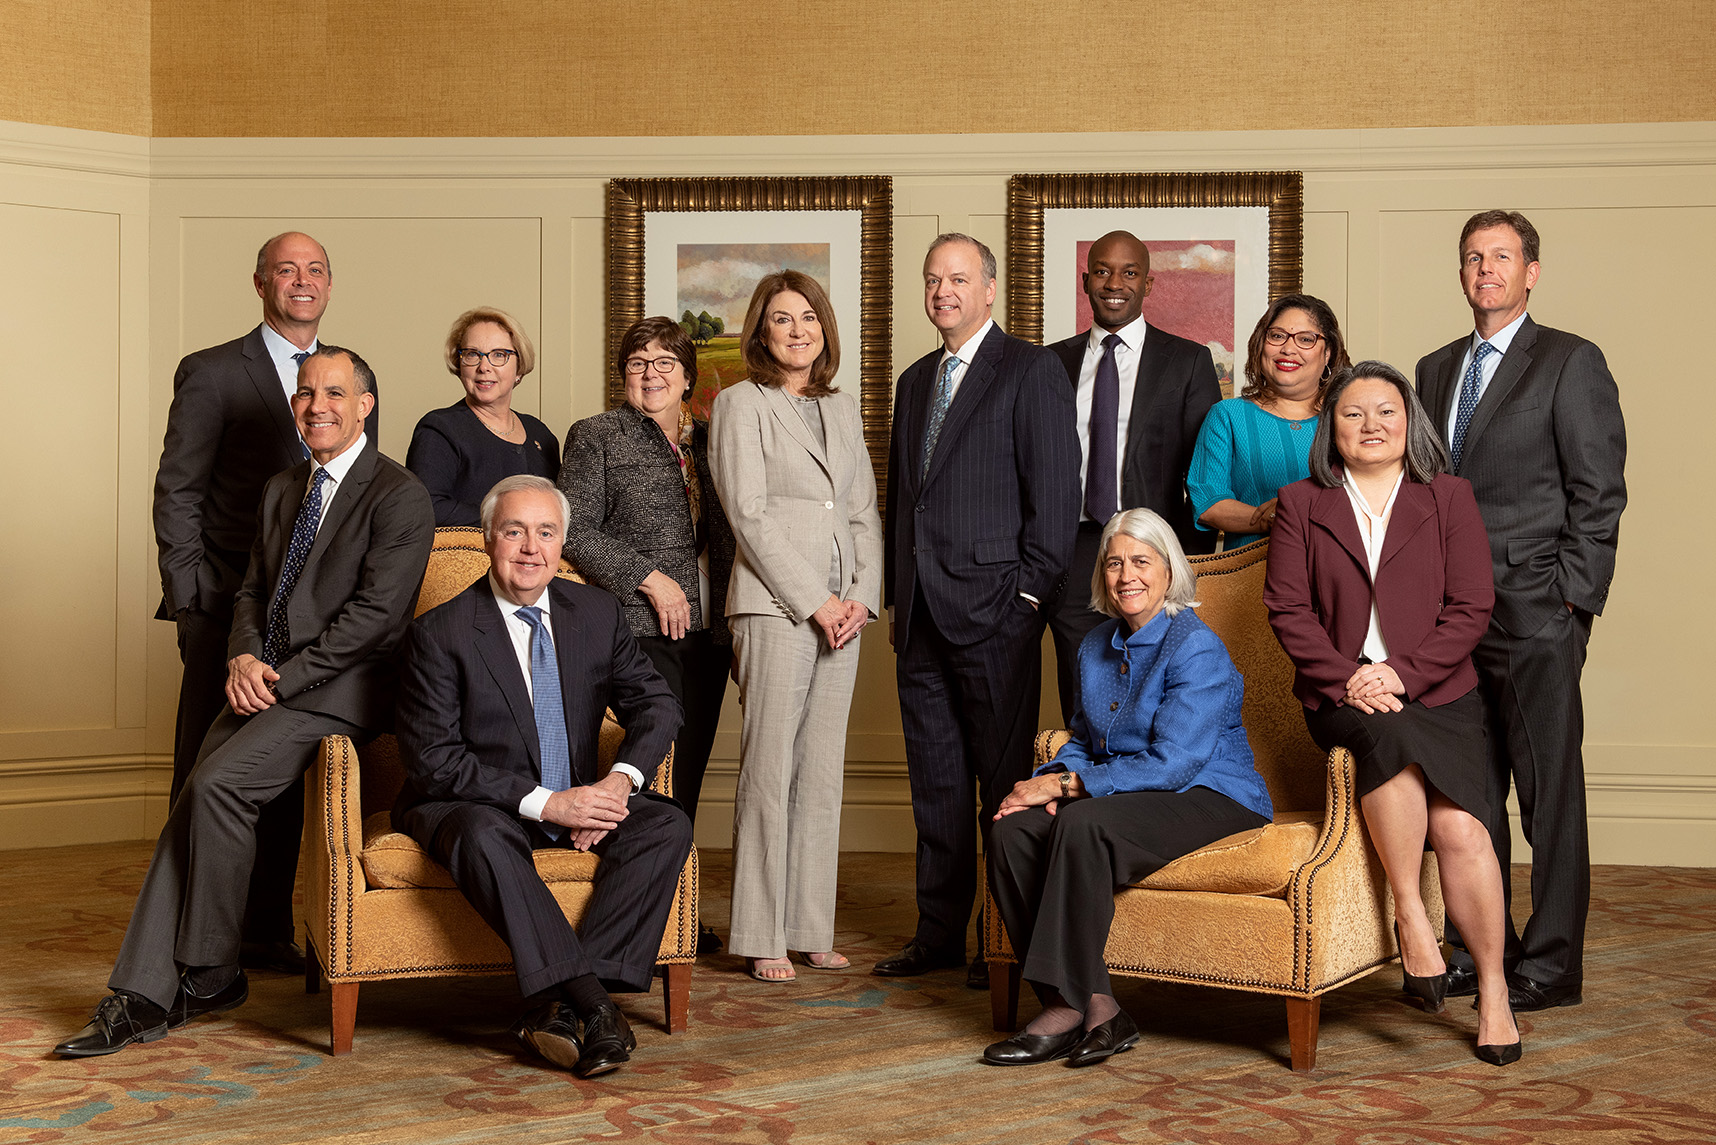 Milton Hershey School's Board of Managers